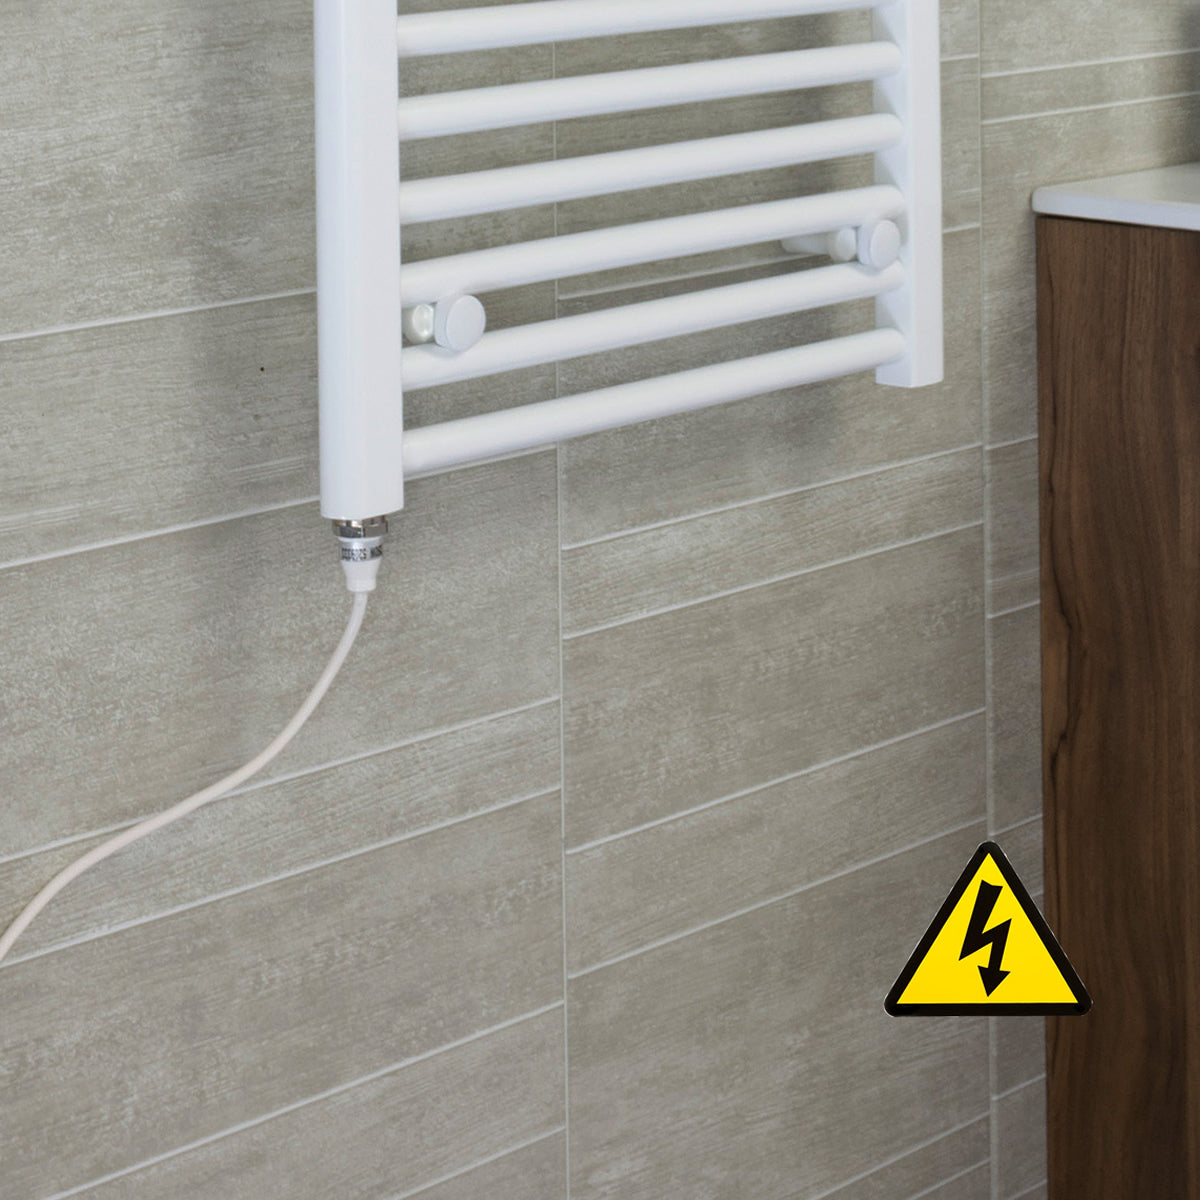 650mm Wide 600mm High Pre-Filled White Electric Towel Rail Radiator With Single Heat Element